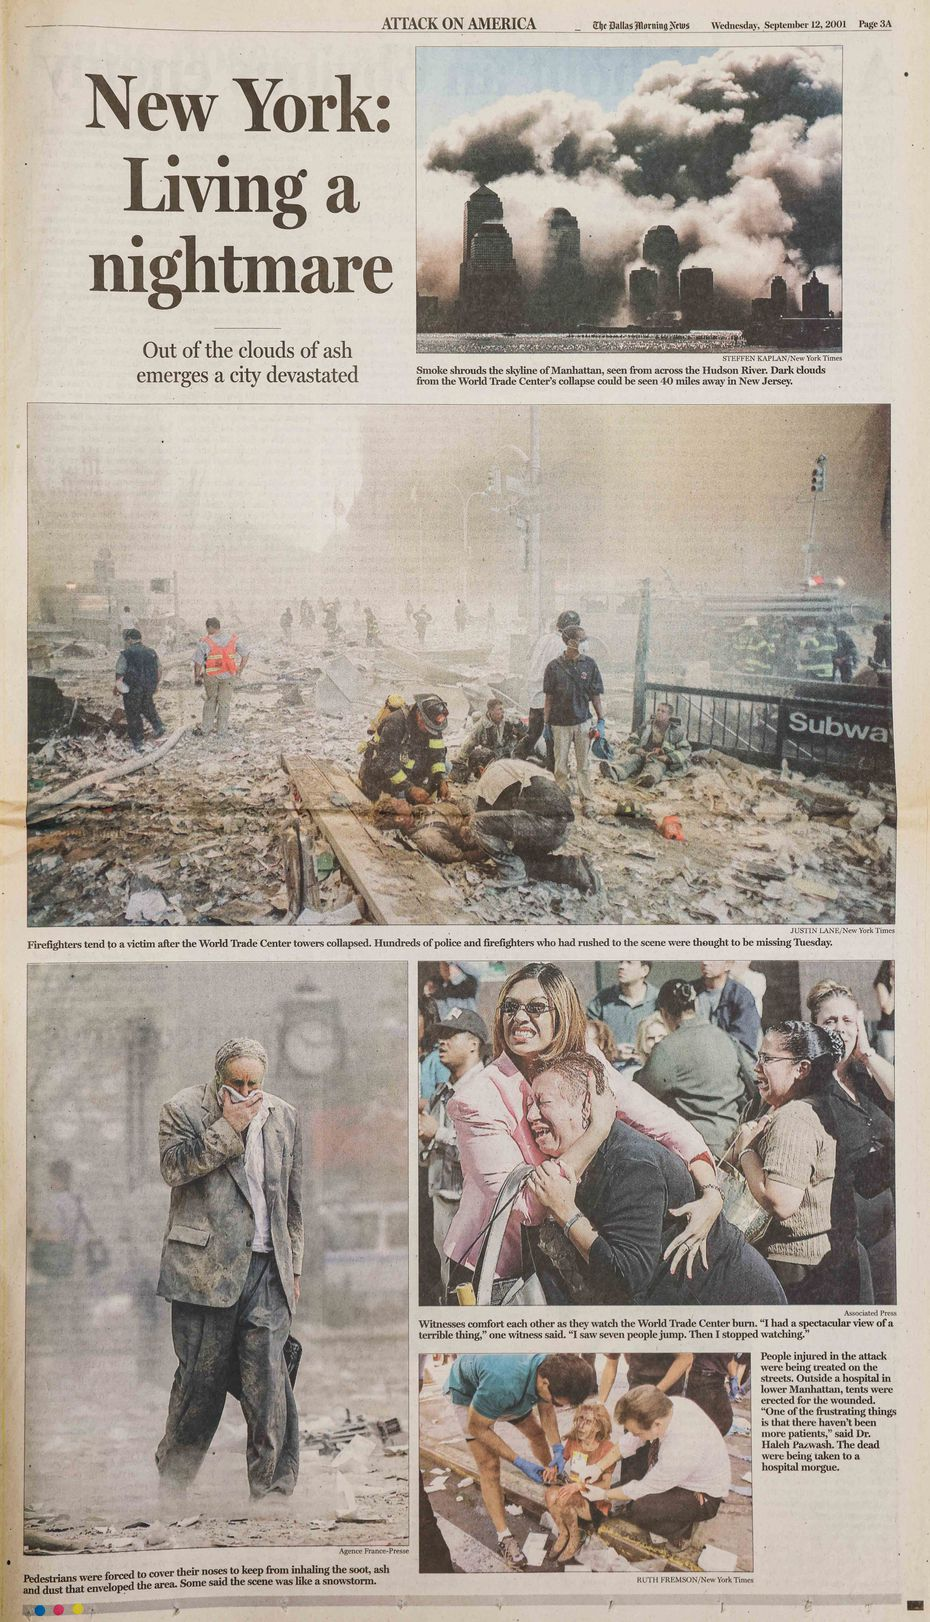 Dallas Morning News 9/11 Special Edition on Wednesday, September 12, 2001.